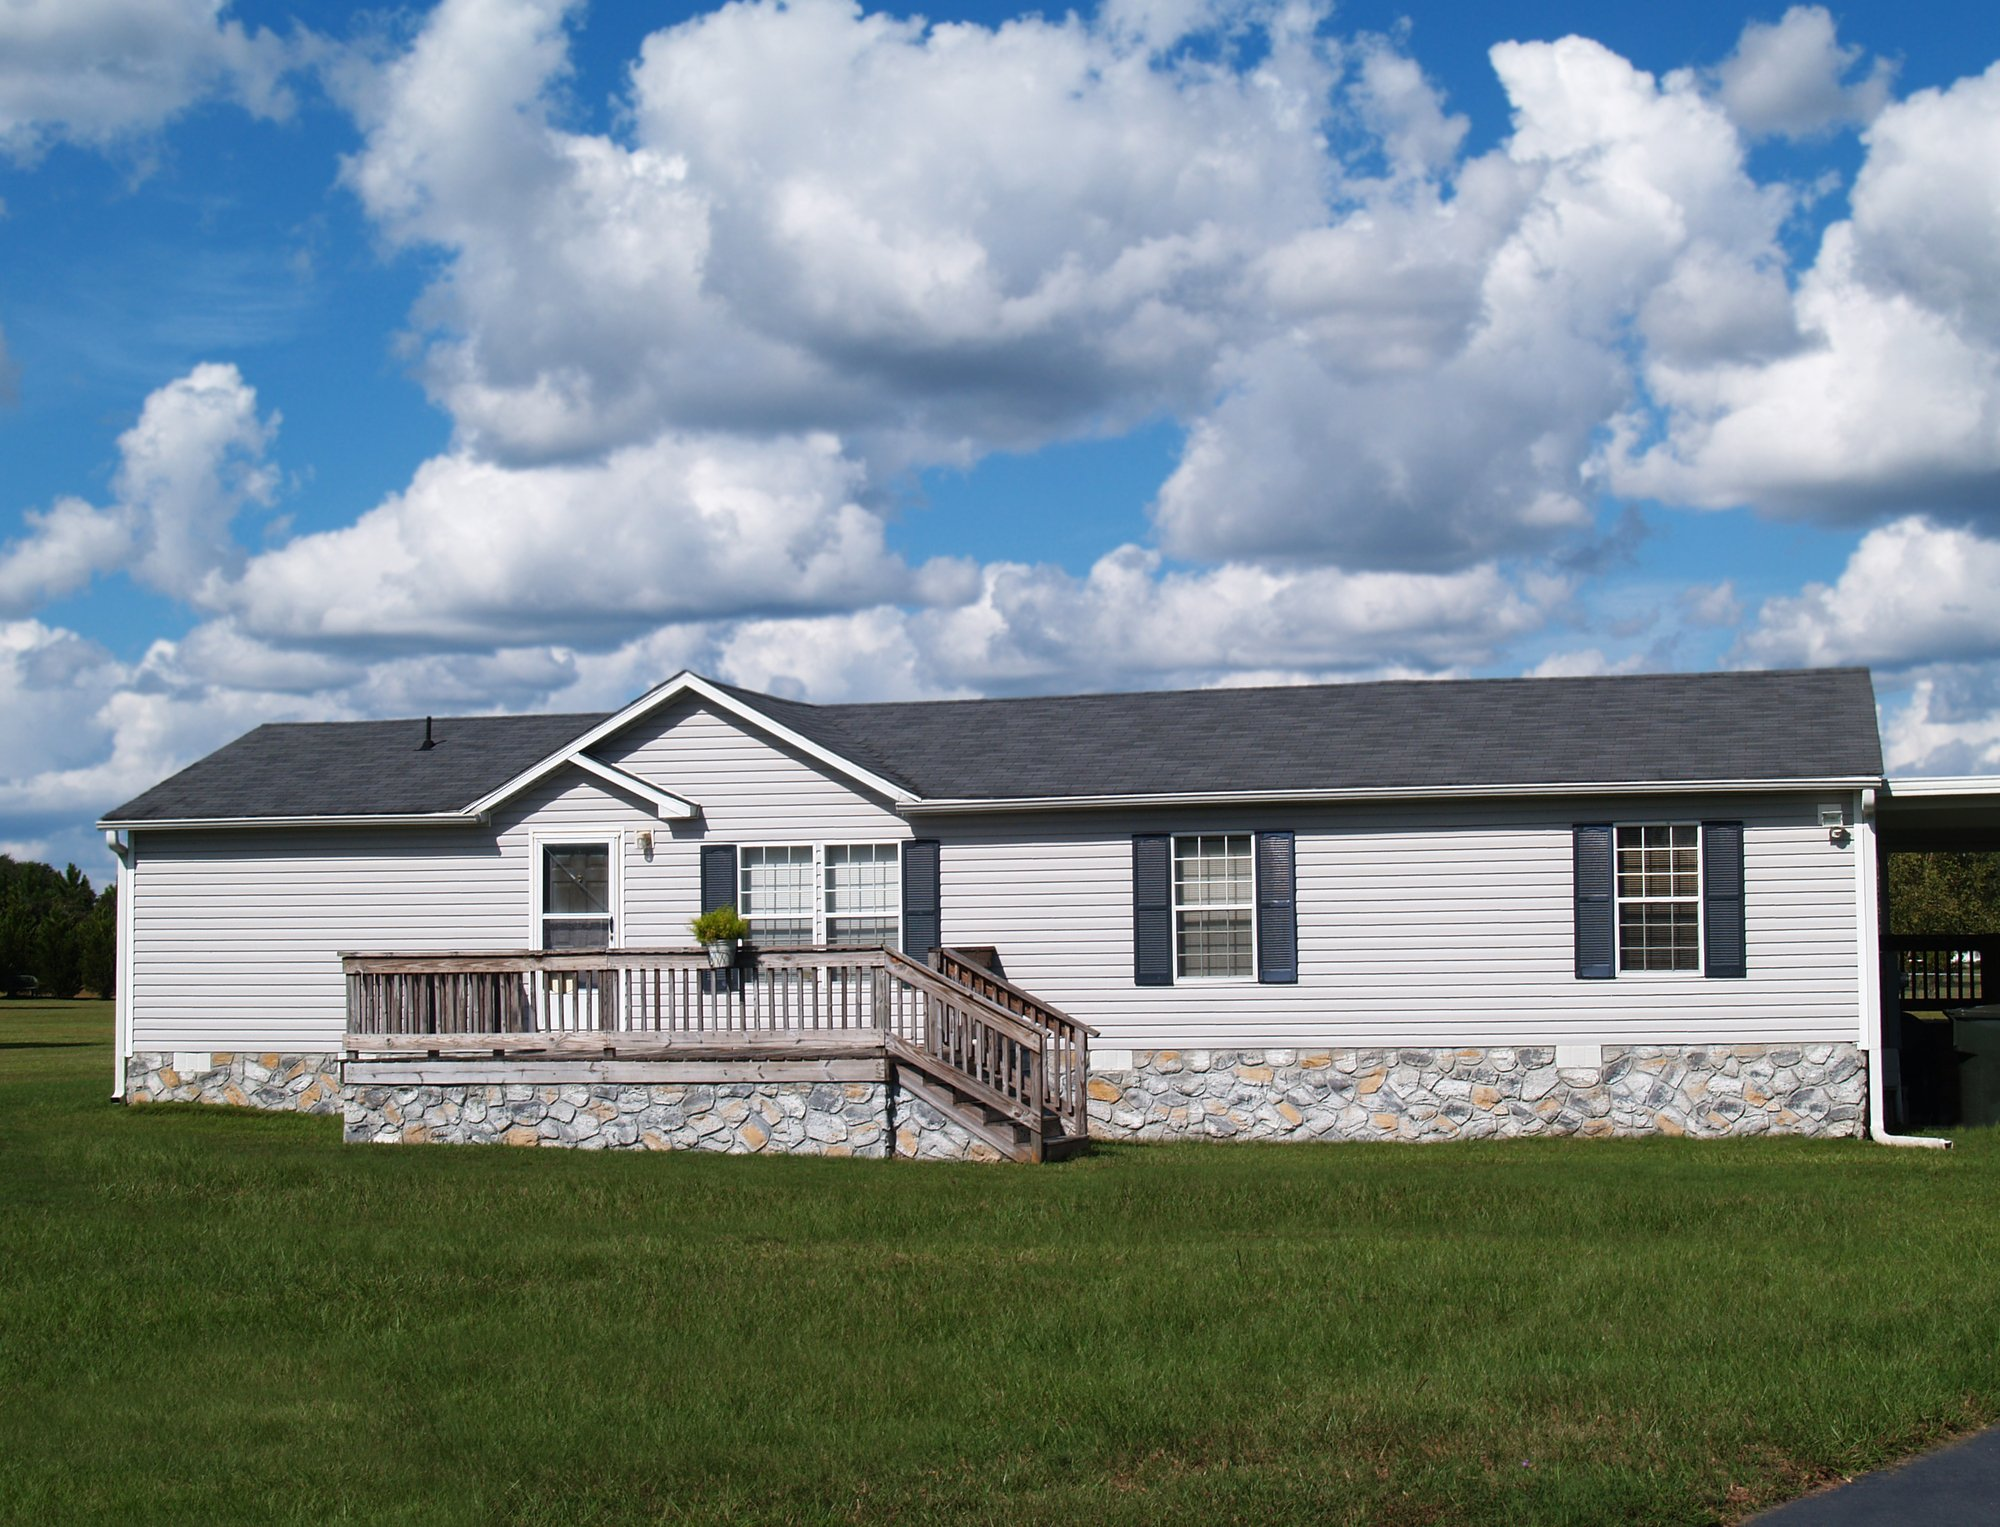 Gray trailer home with stone foundation or skirting and shutters in front of a beautiful sky